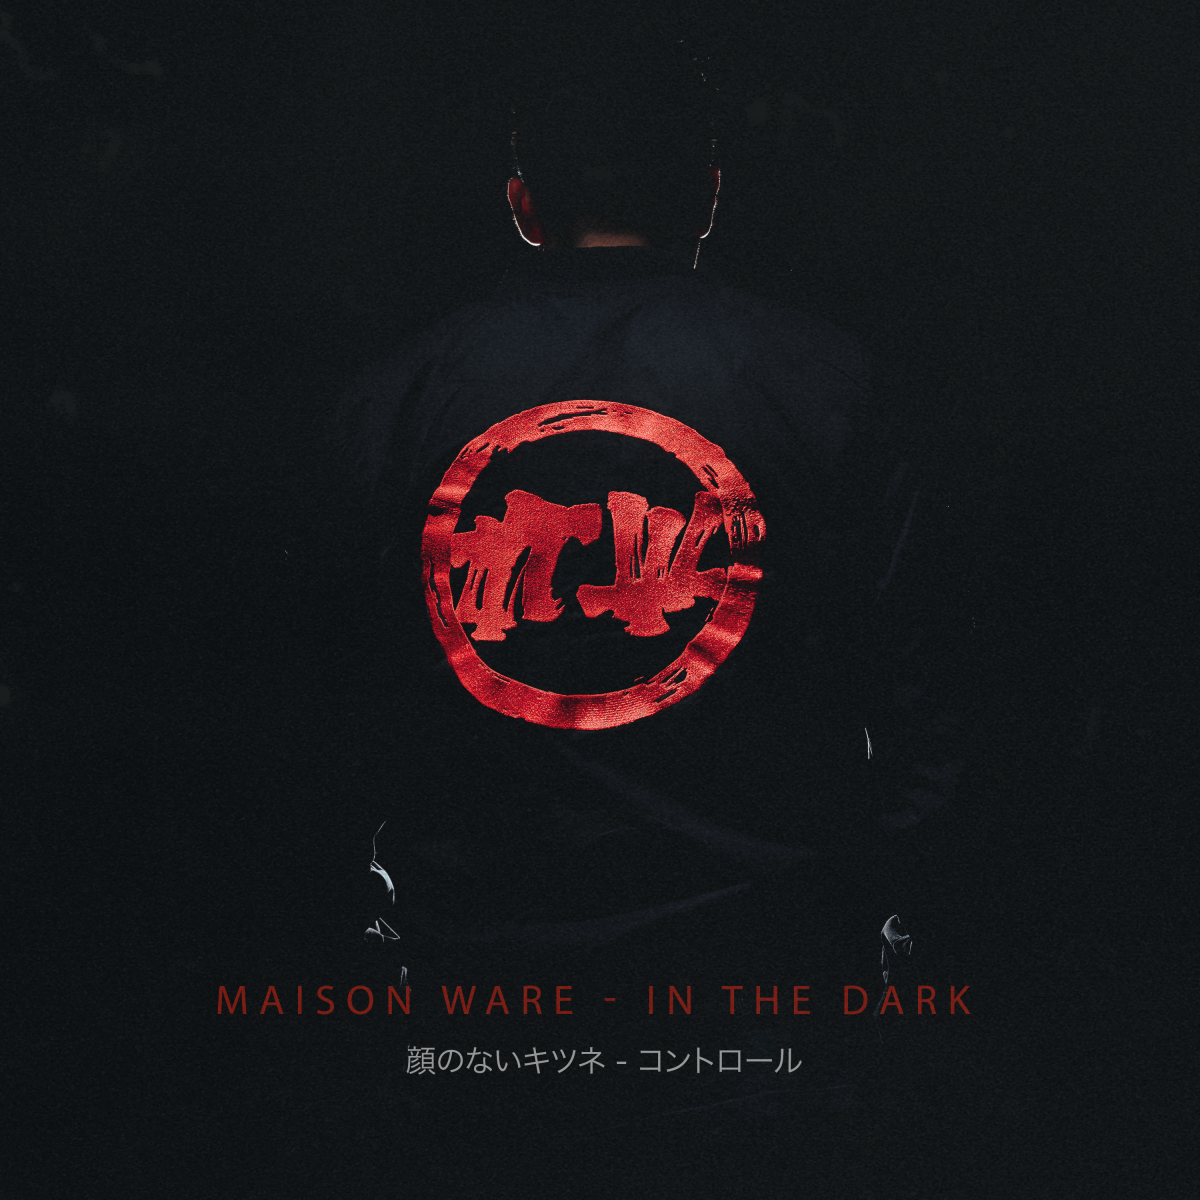 Maison Ware - In The Dark (ALBUM ART / COVER ART)